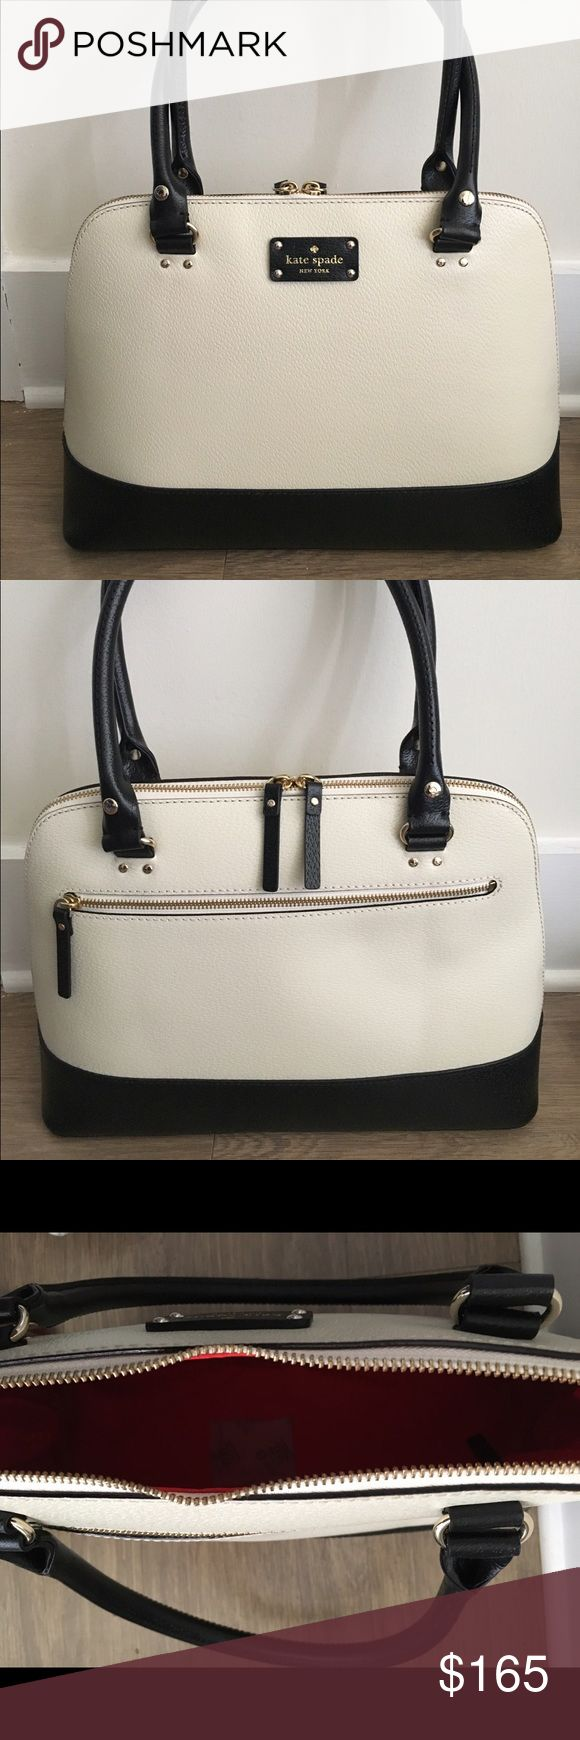 Kate Spade Cameron Street Margot Black/White Brand new Kate Spade Cameron Street Margot Handbag. Gold embossed signature with zipper closure and double side pockets. kate spade Bags Satchels